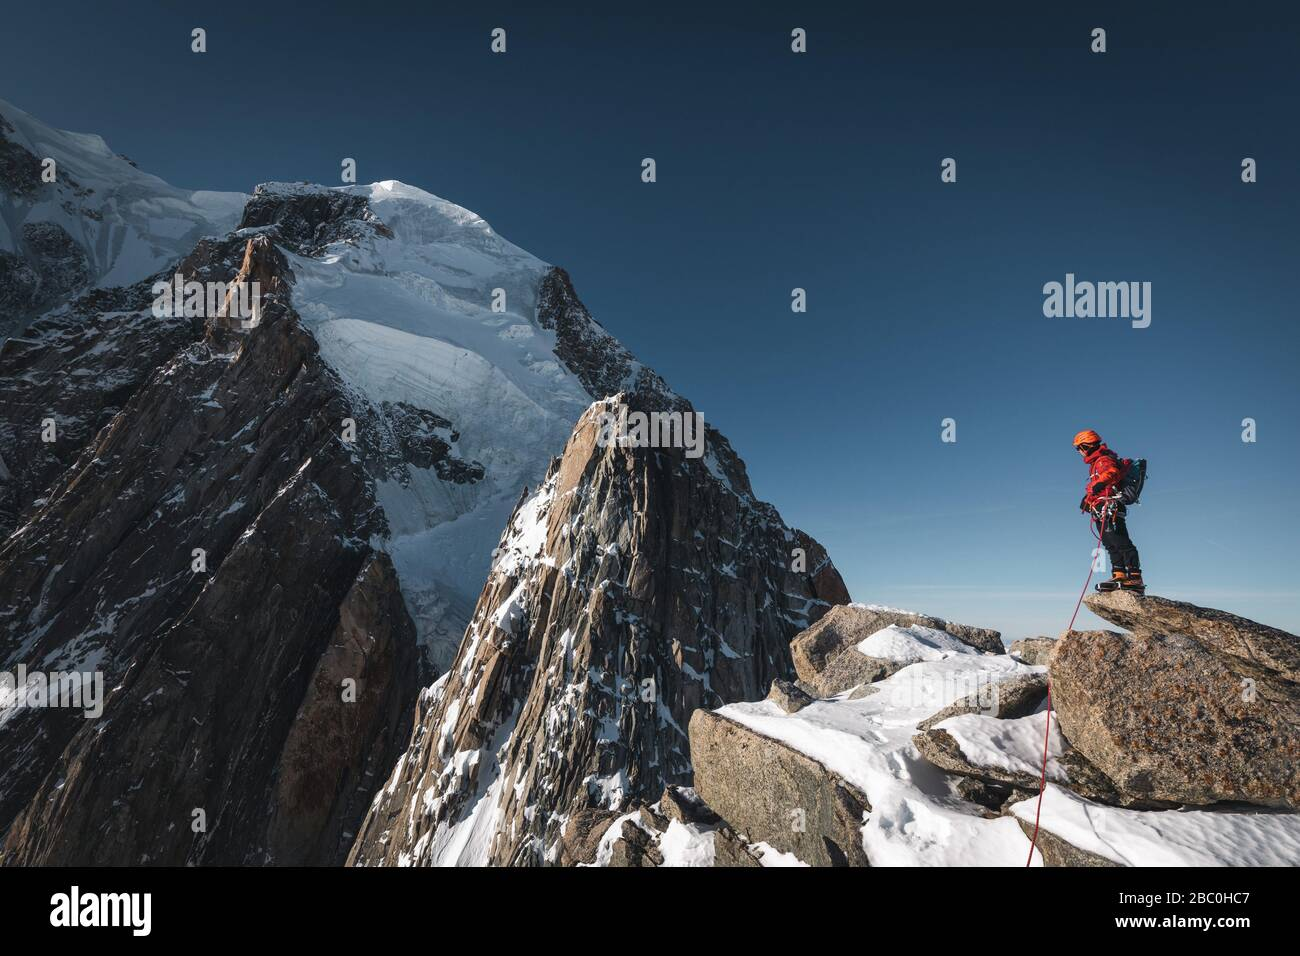 GUIDE ON THE RIDGE OF THE POINTES LACHENAL AT THE FOOT OF THE SERACS DU MONT BLANC, CHAMONIX-MONT-BLANC, HAUTE-SAVOIE (74), FRANCE Stock Photo